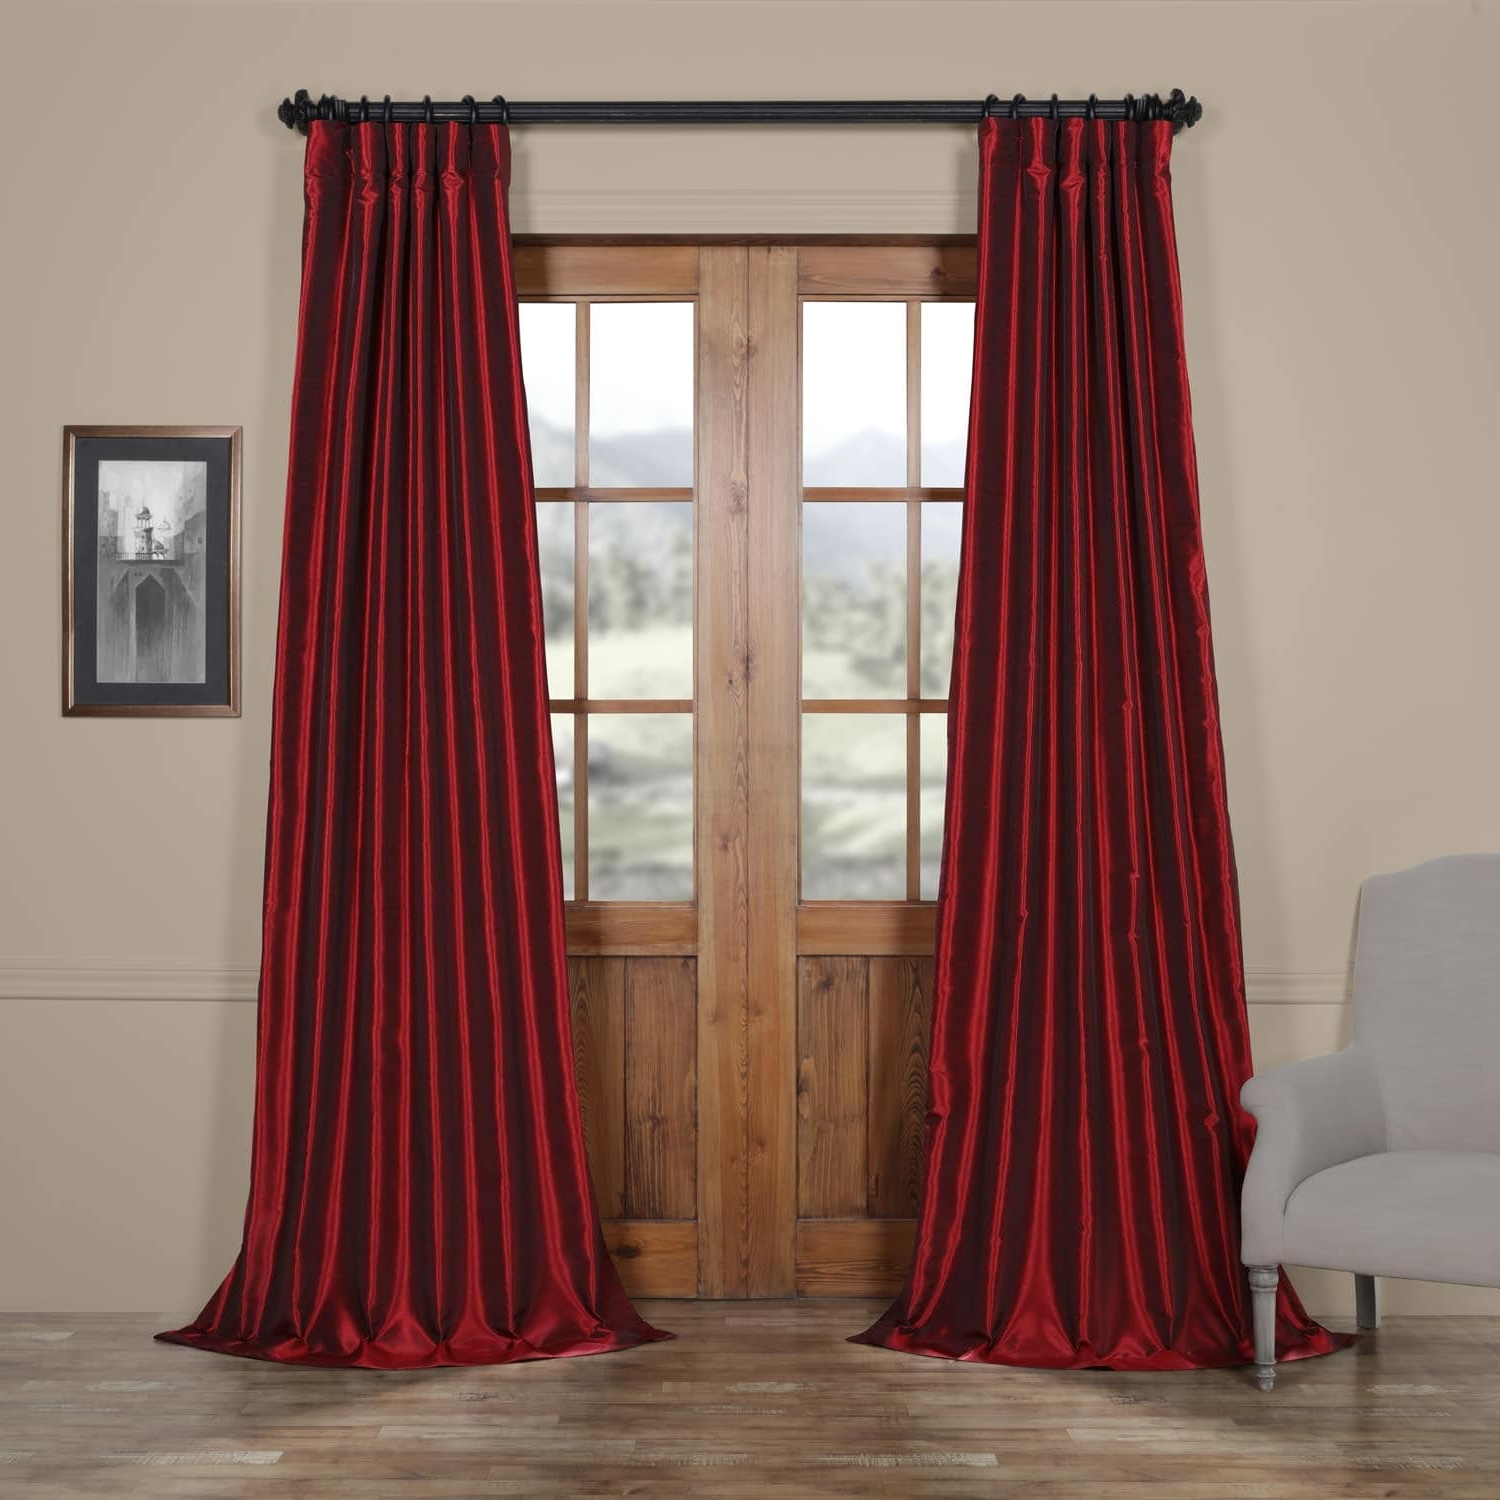 Well Known Exclusive Fabrics True Blackout Vintage Textured Faux Dupioni Silk Curtain Panel Intended For True Blackout Vintage Textured Faux Silk Curtain Panels (View 17 of 20)